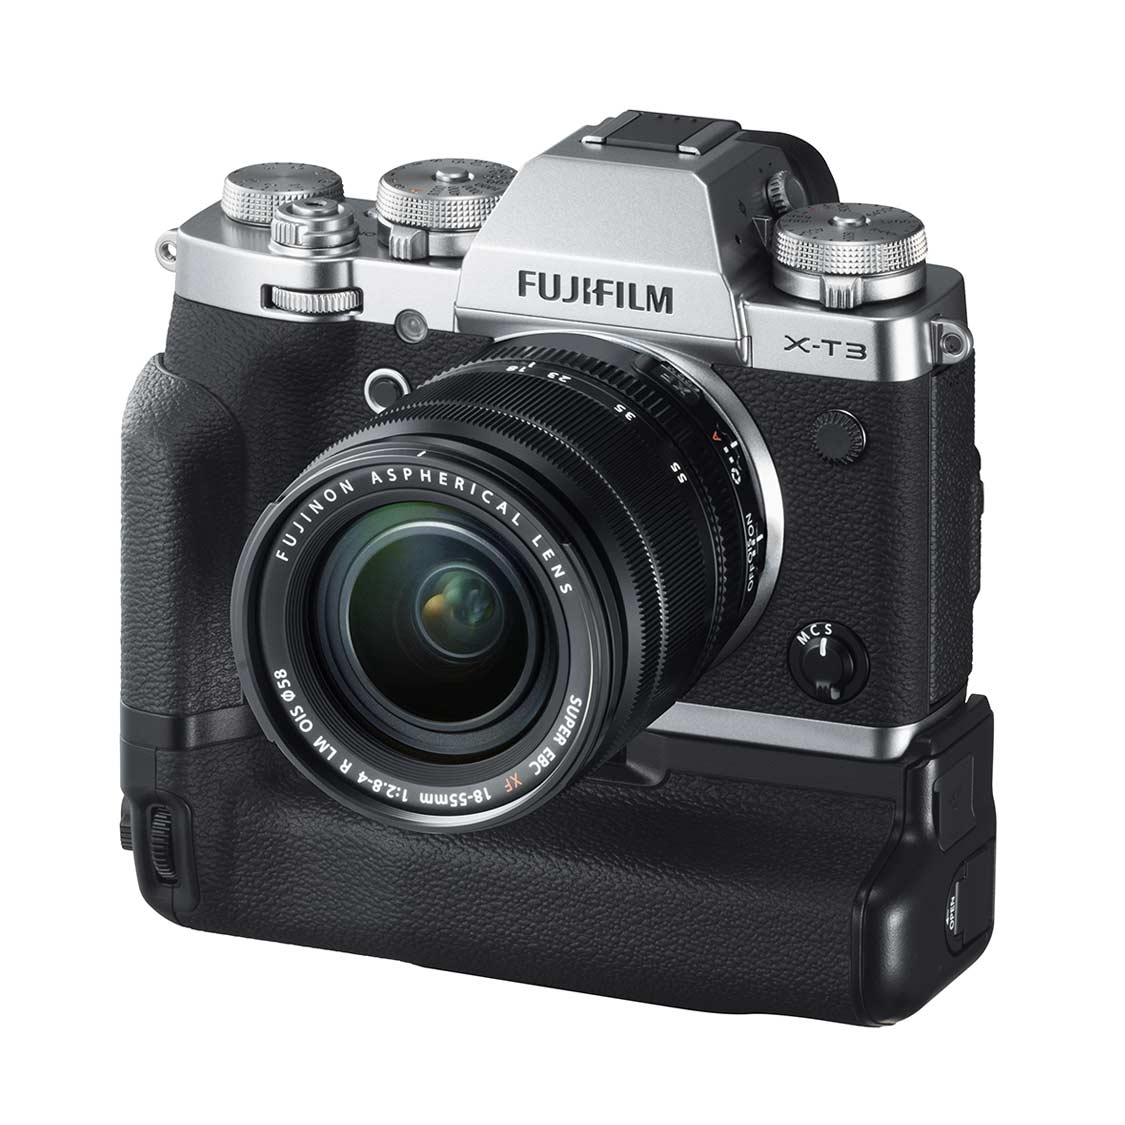 Fuji X-T3 Camera (silver) with 18-55mm Lens and VG-XT3 Grip